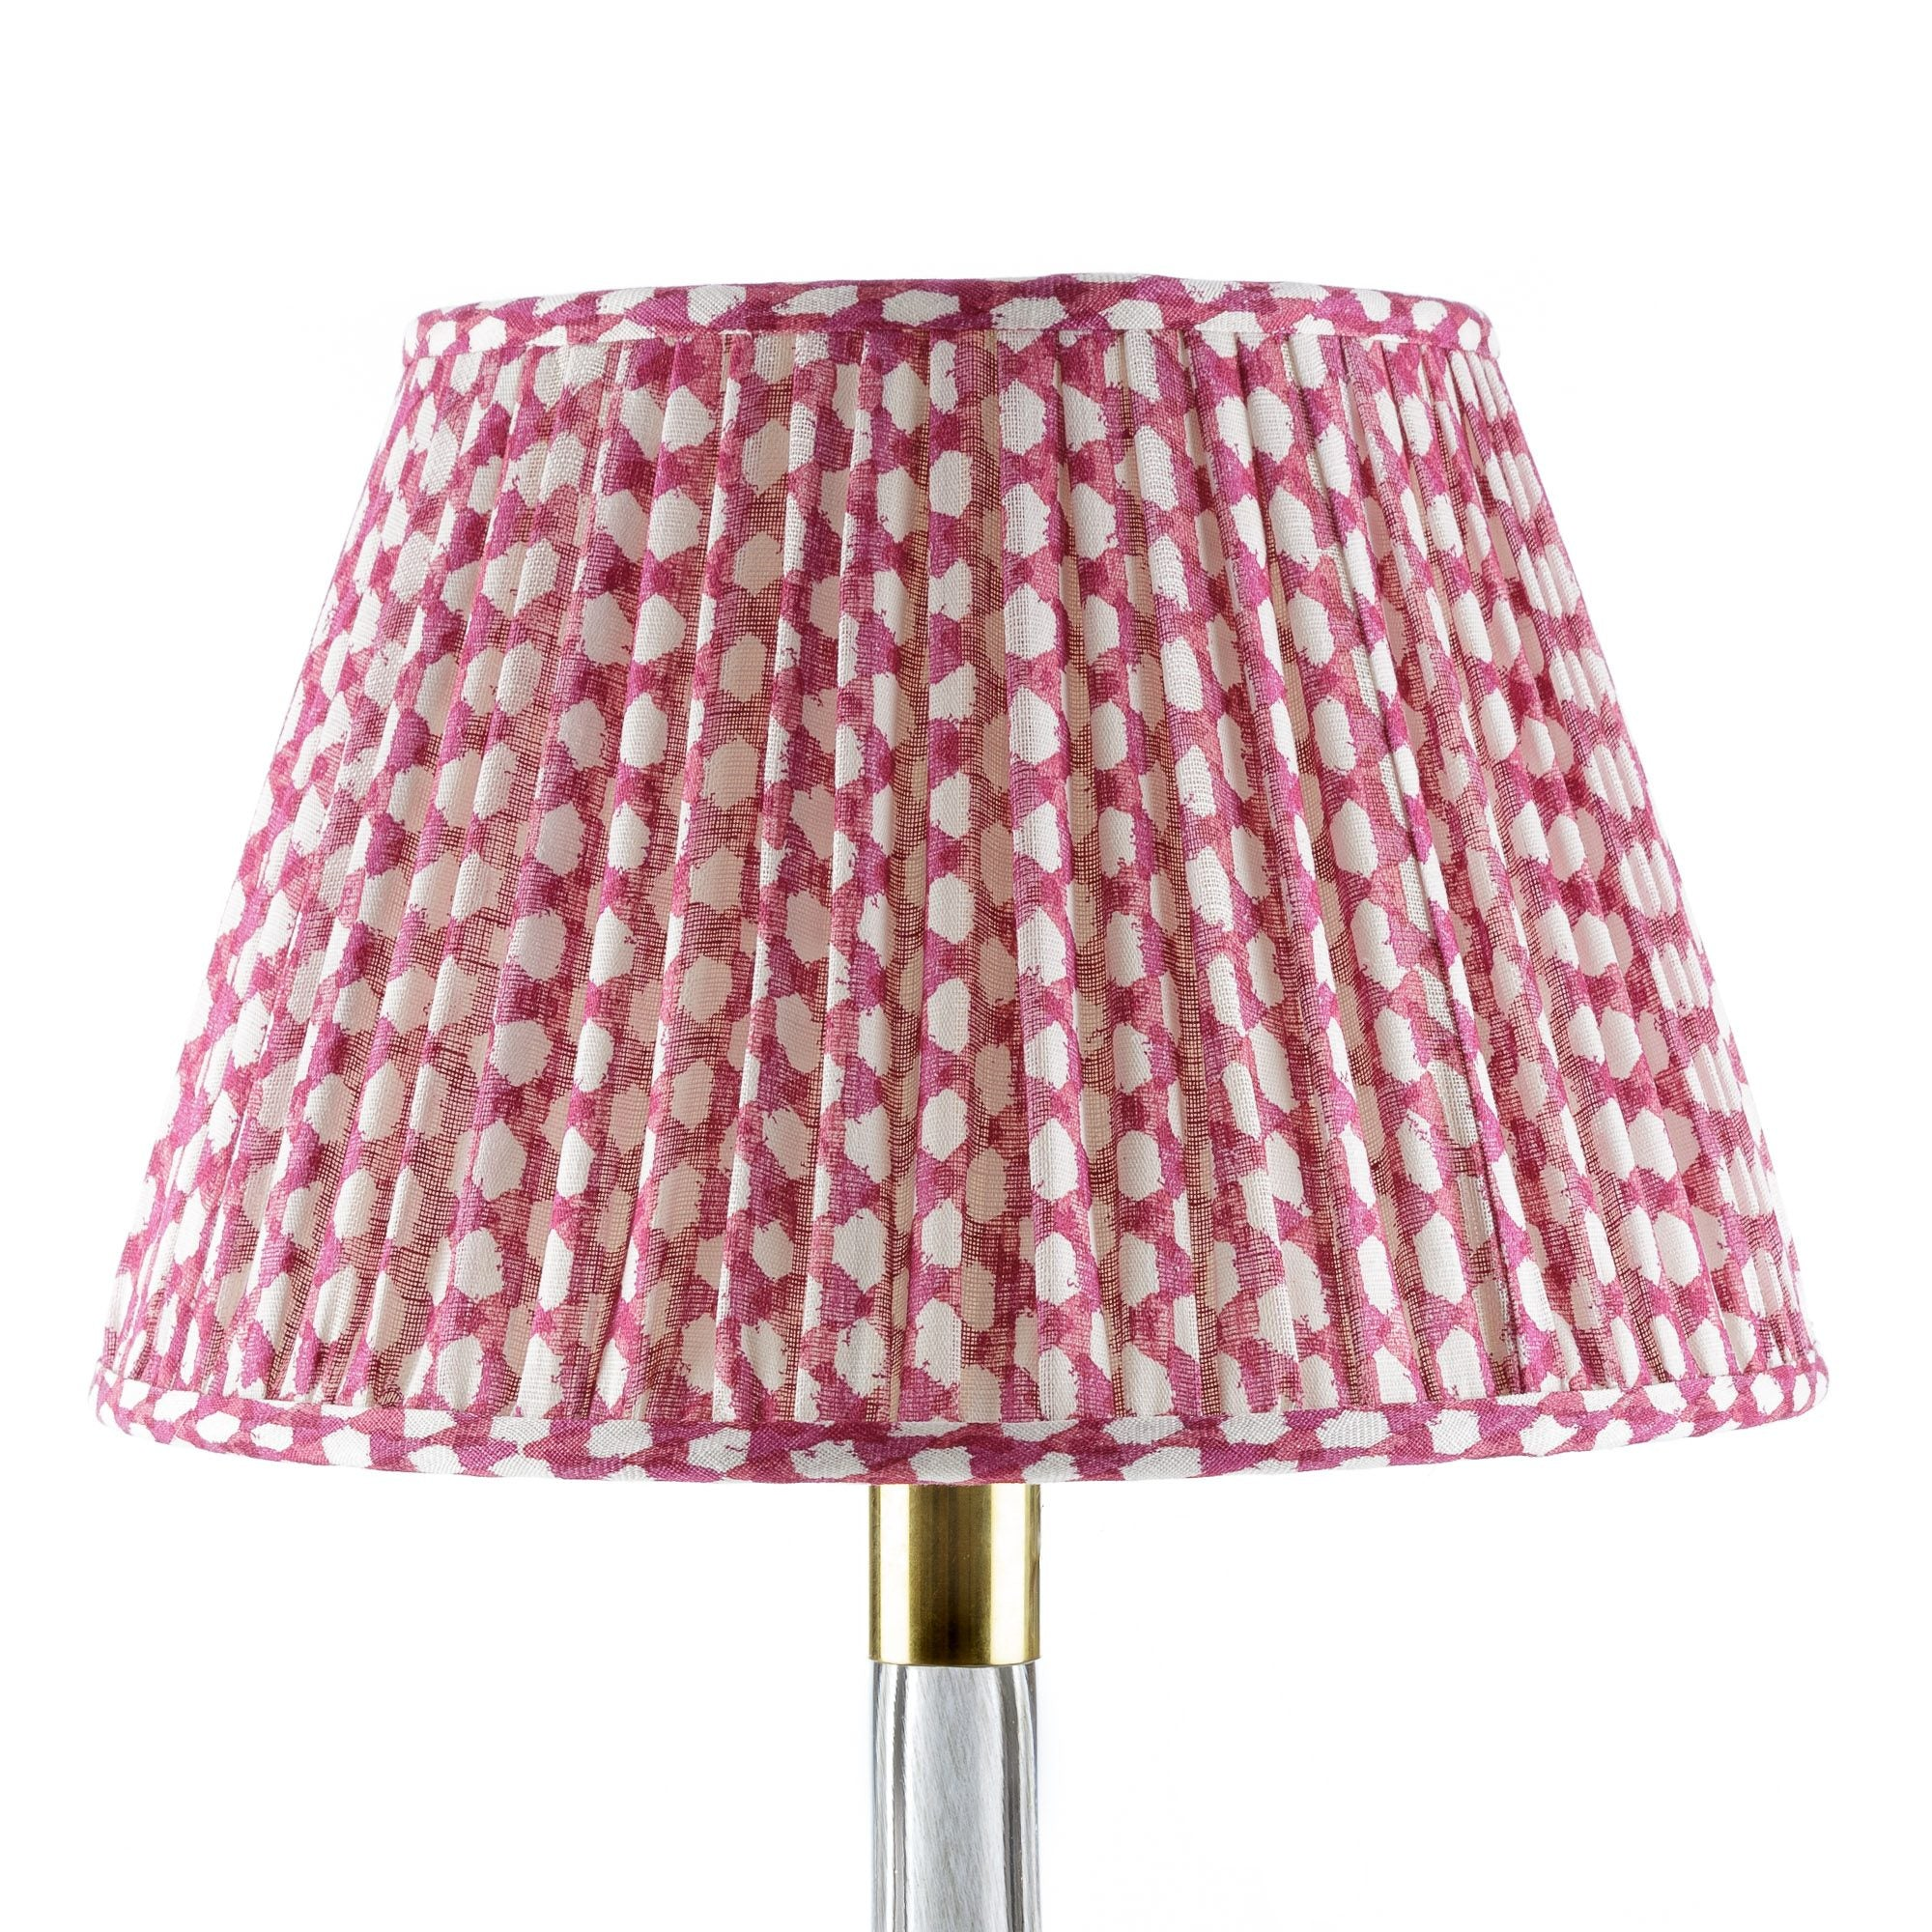 Fermoie Lampshade in Fuchsia Wicker